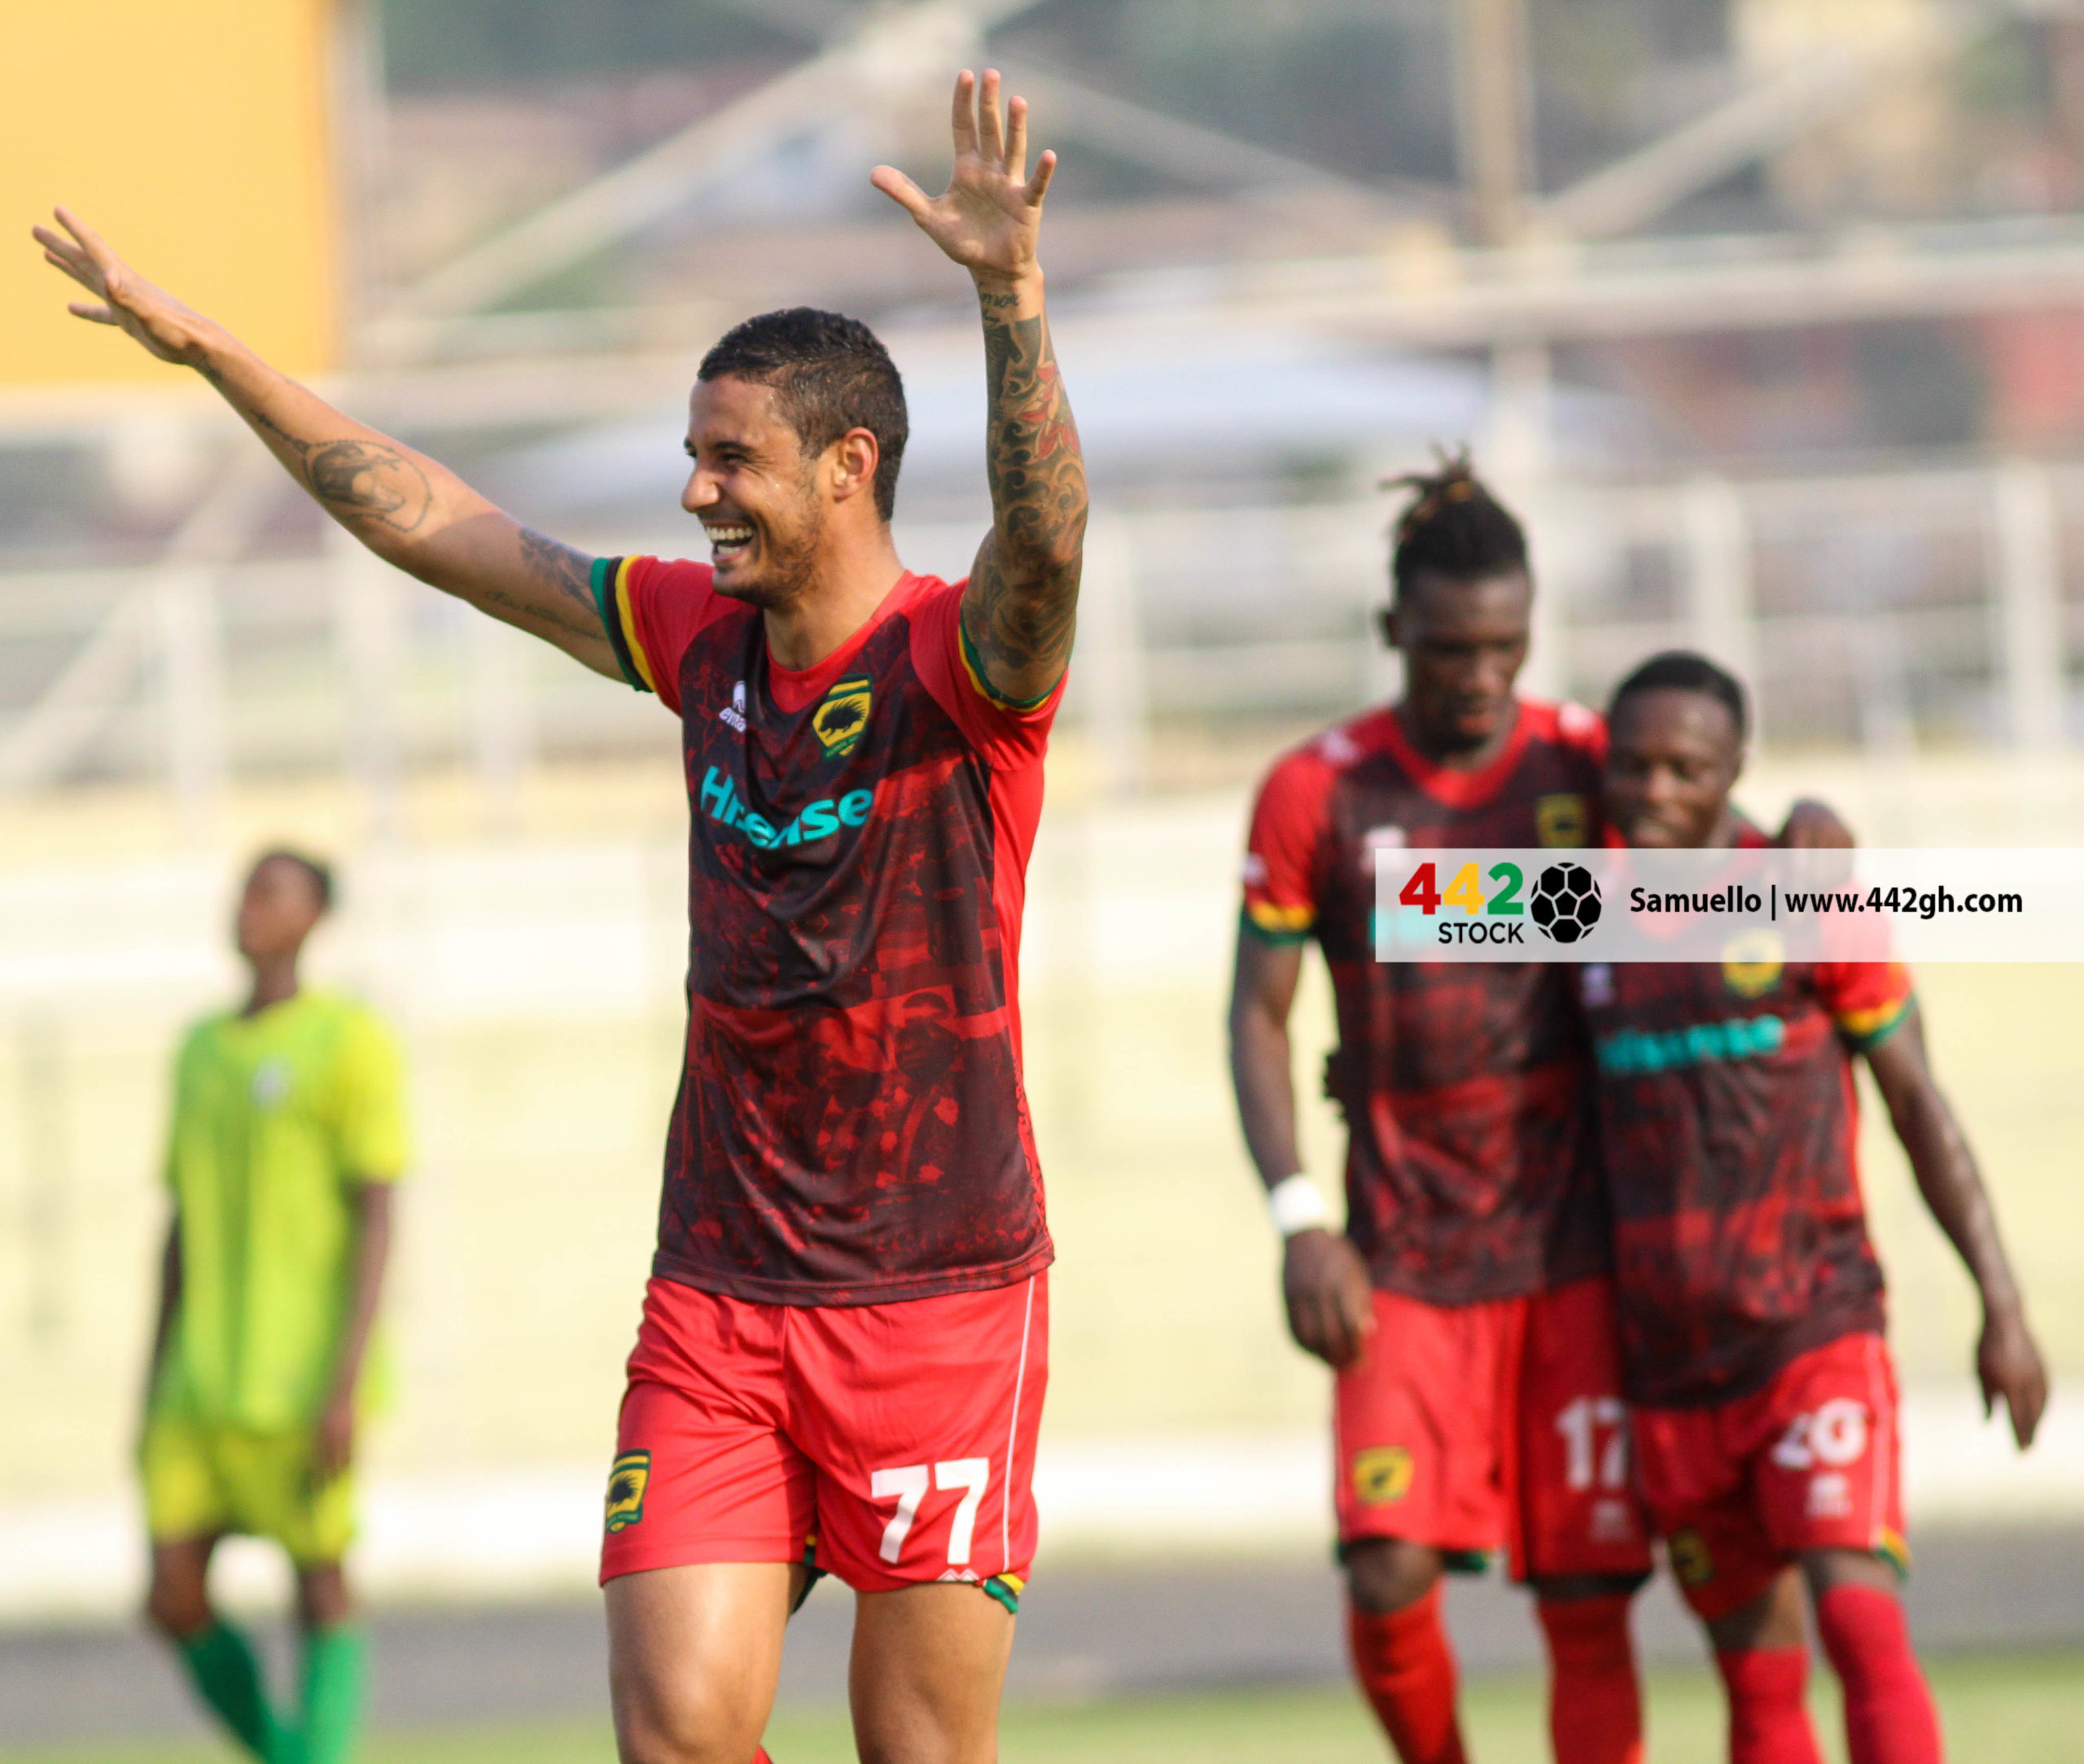 IMG 7485 scaled - PICTURE SPECIAL: Michael Vinicius' First Appearance In A Kotoko Shirt Against Bechem United